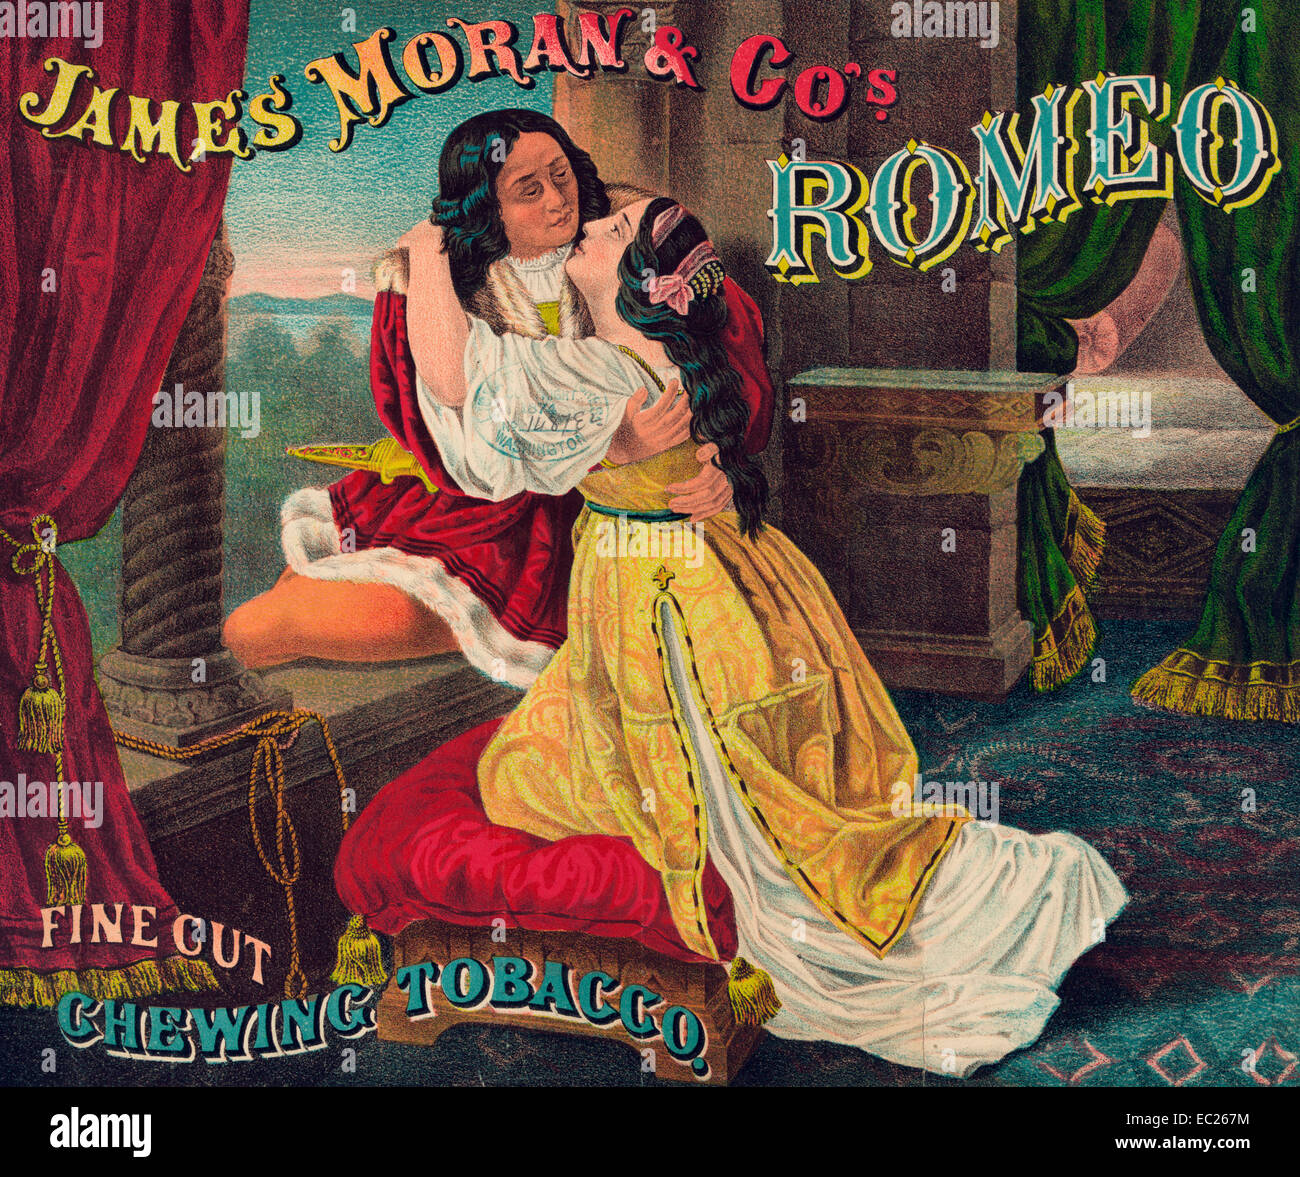 James Moran & Co.'s Romeo, fine cut, chewing tobacco - Summary: Tobacco package label showing Romeo and - Stock Image